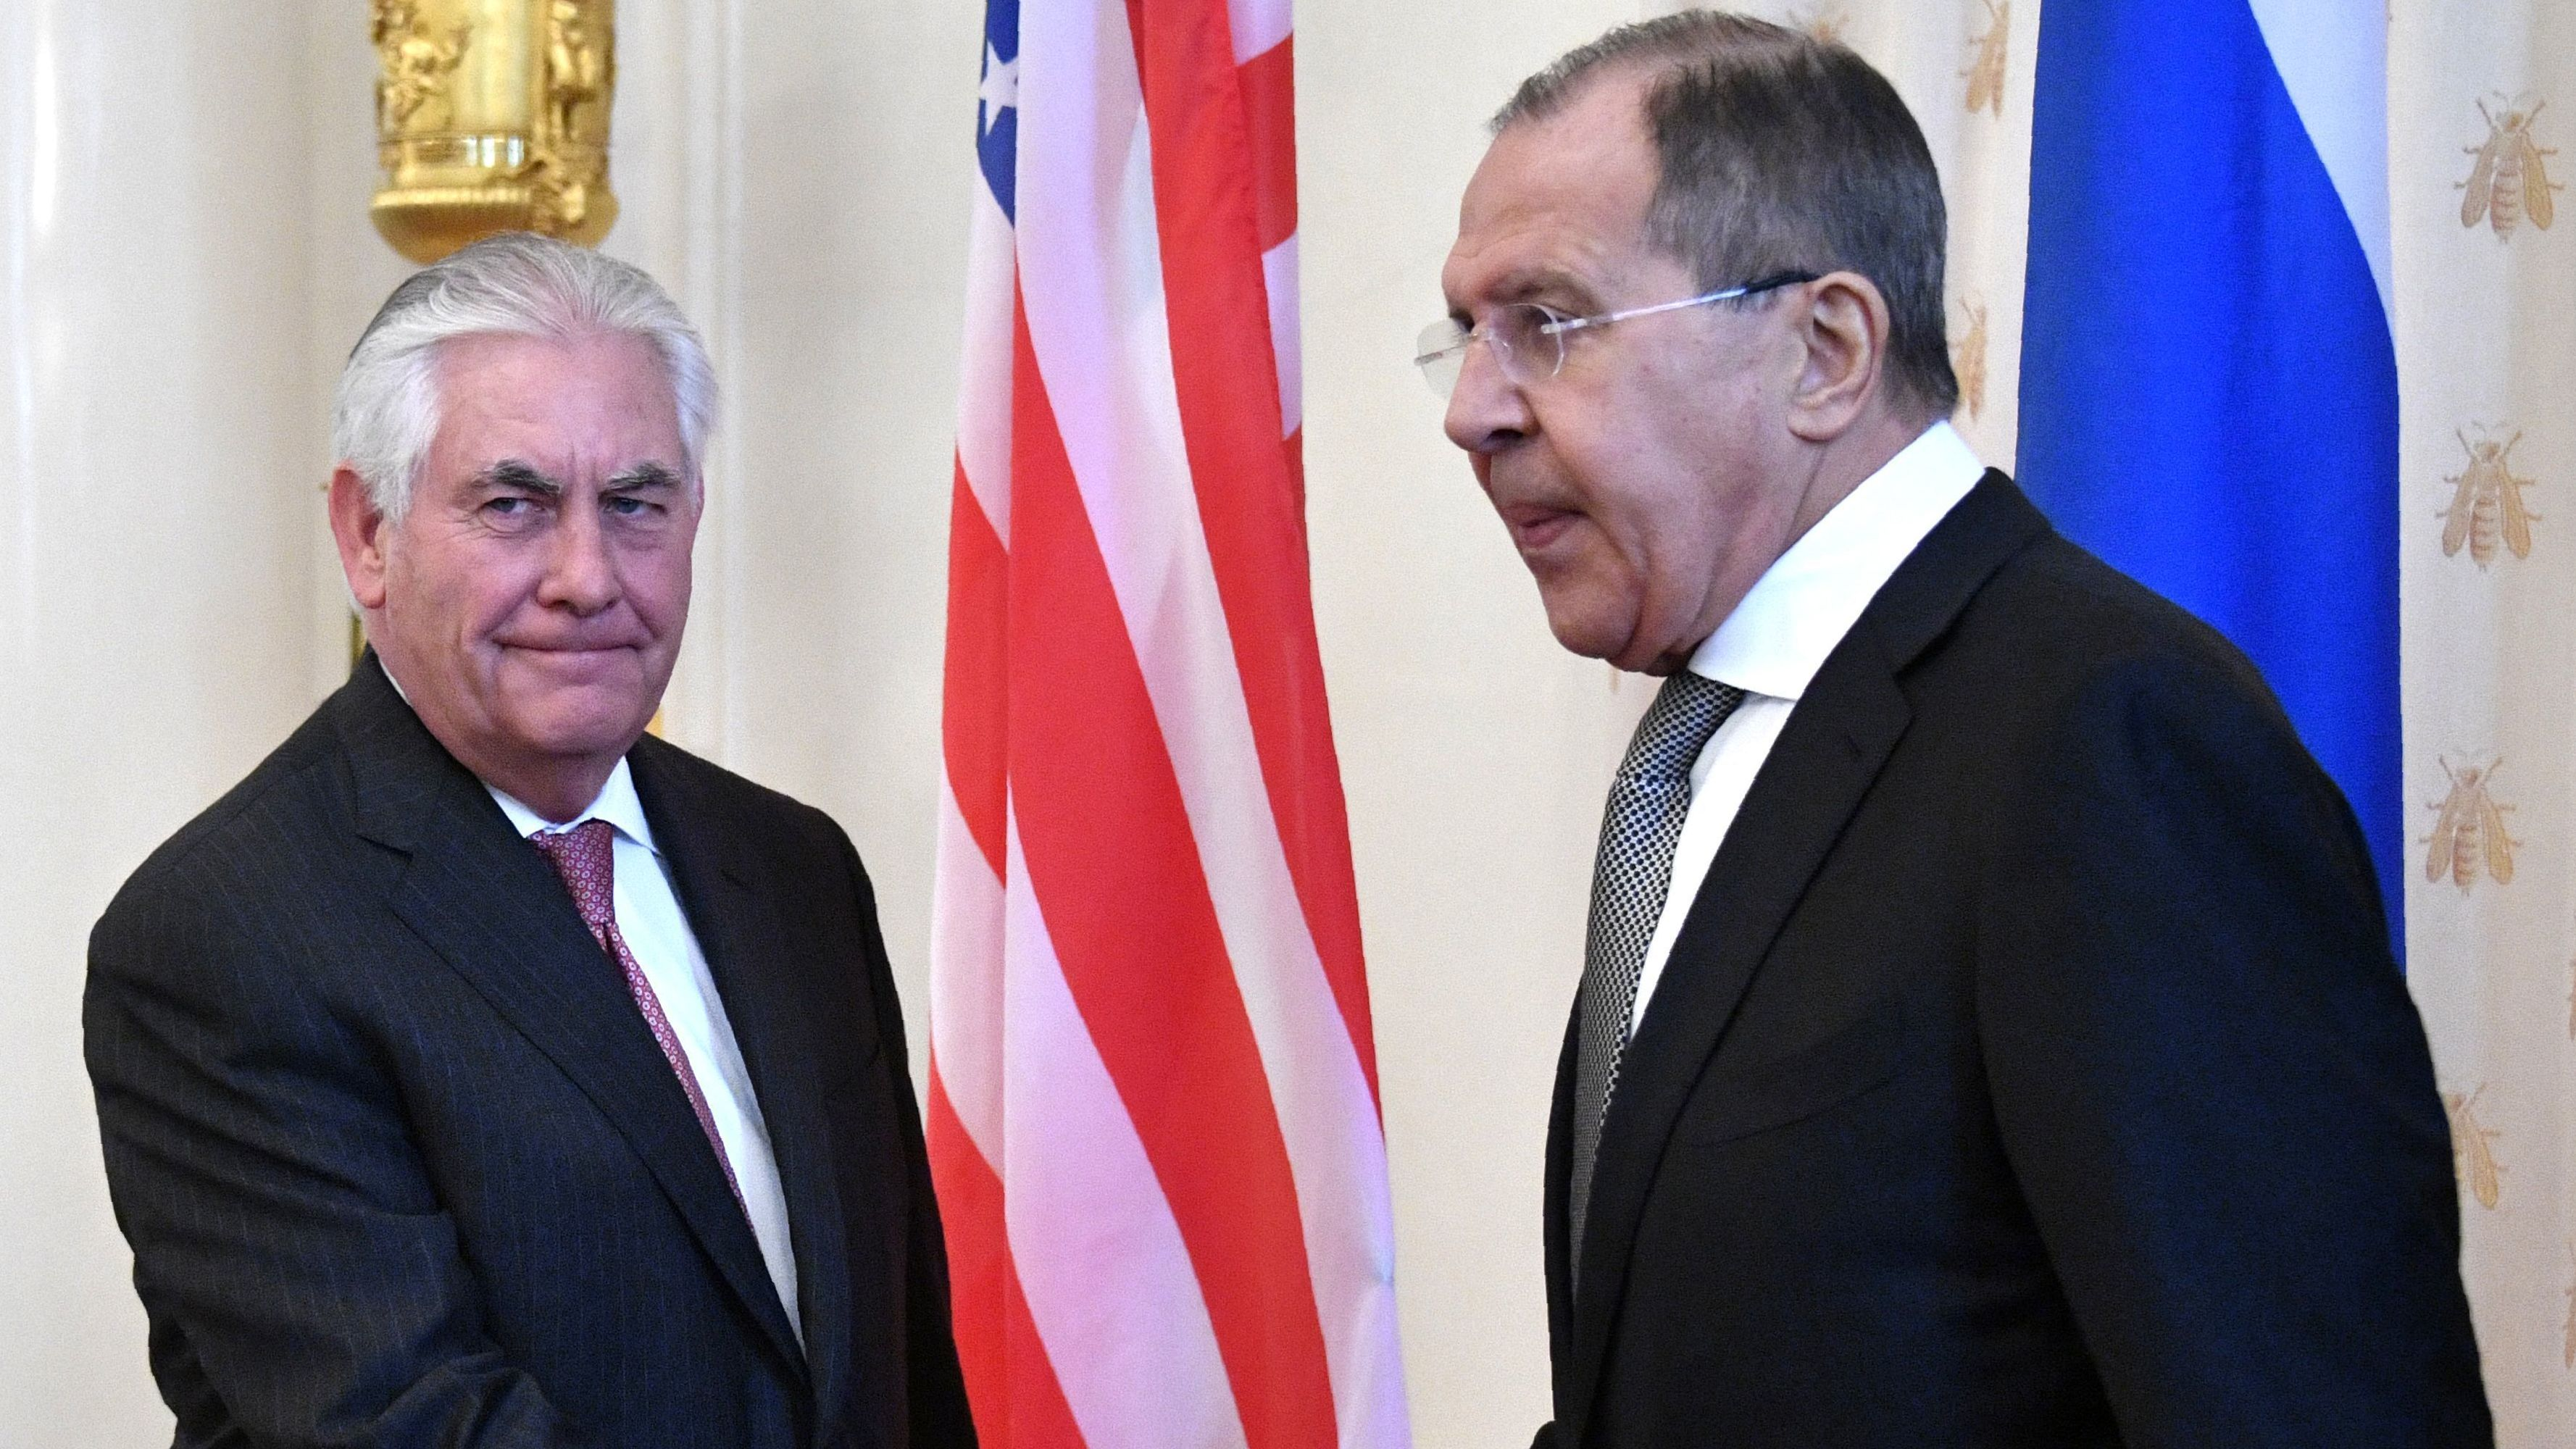 Russian Federation  and United States of America , after Tillerson talks, agree modest steps to mend ties